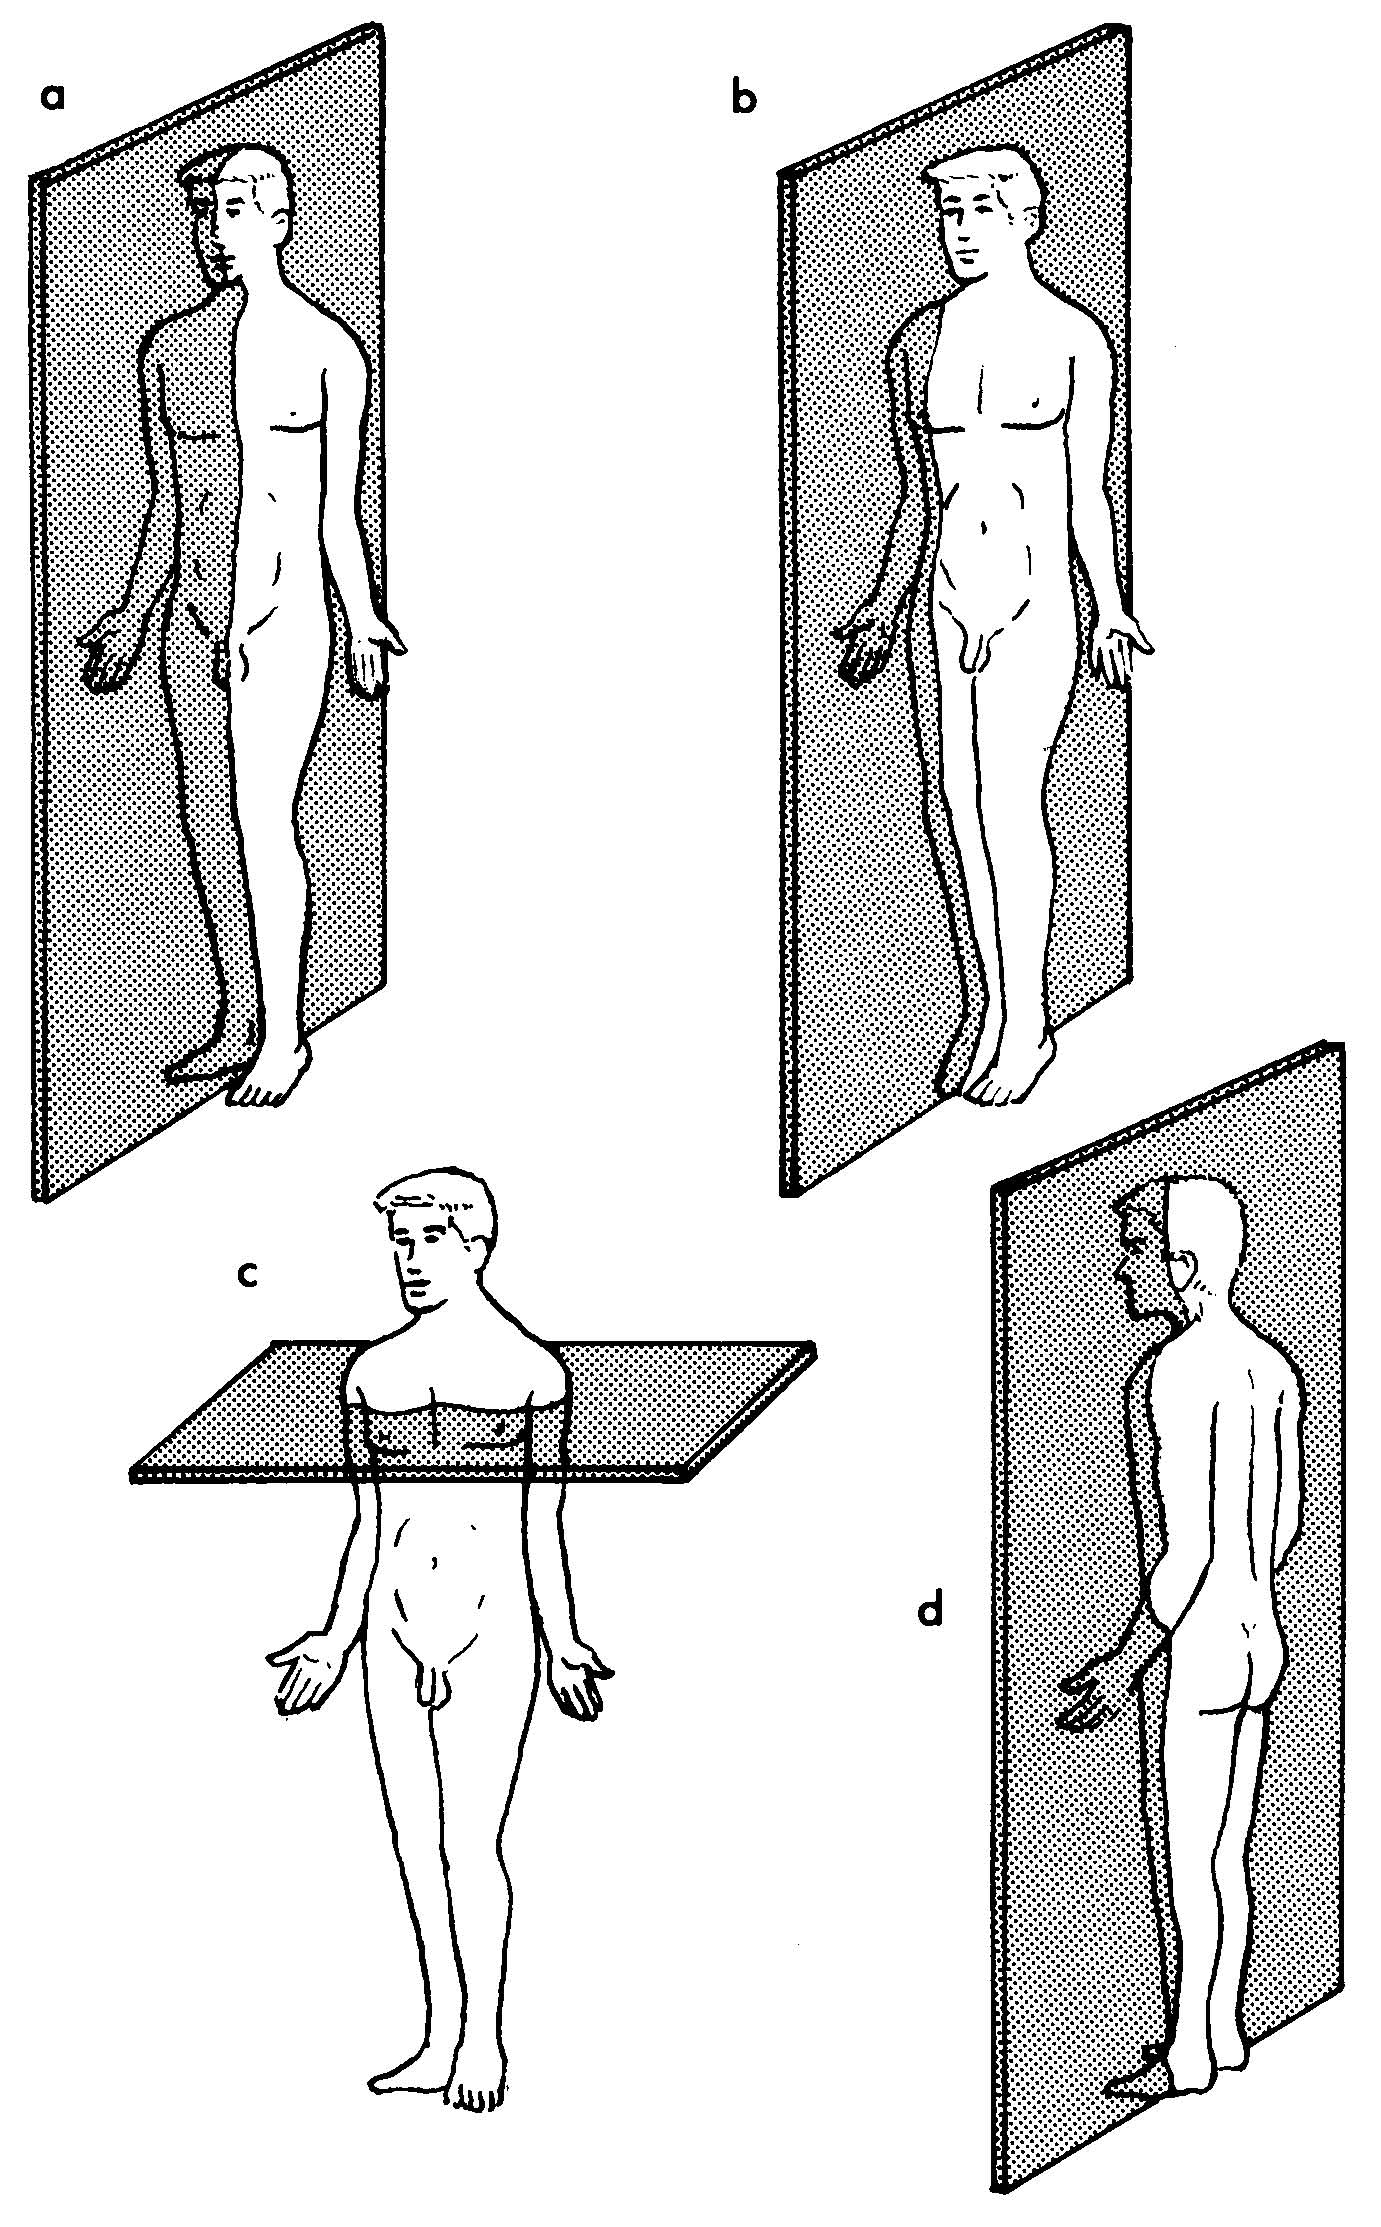 hight resolution of body plane diagram unlabeled